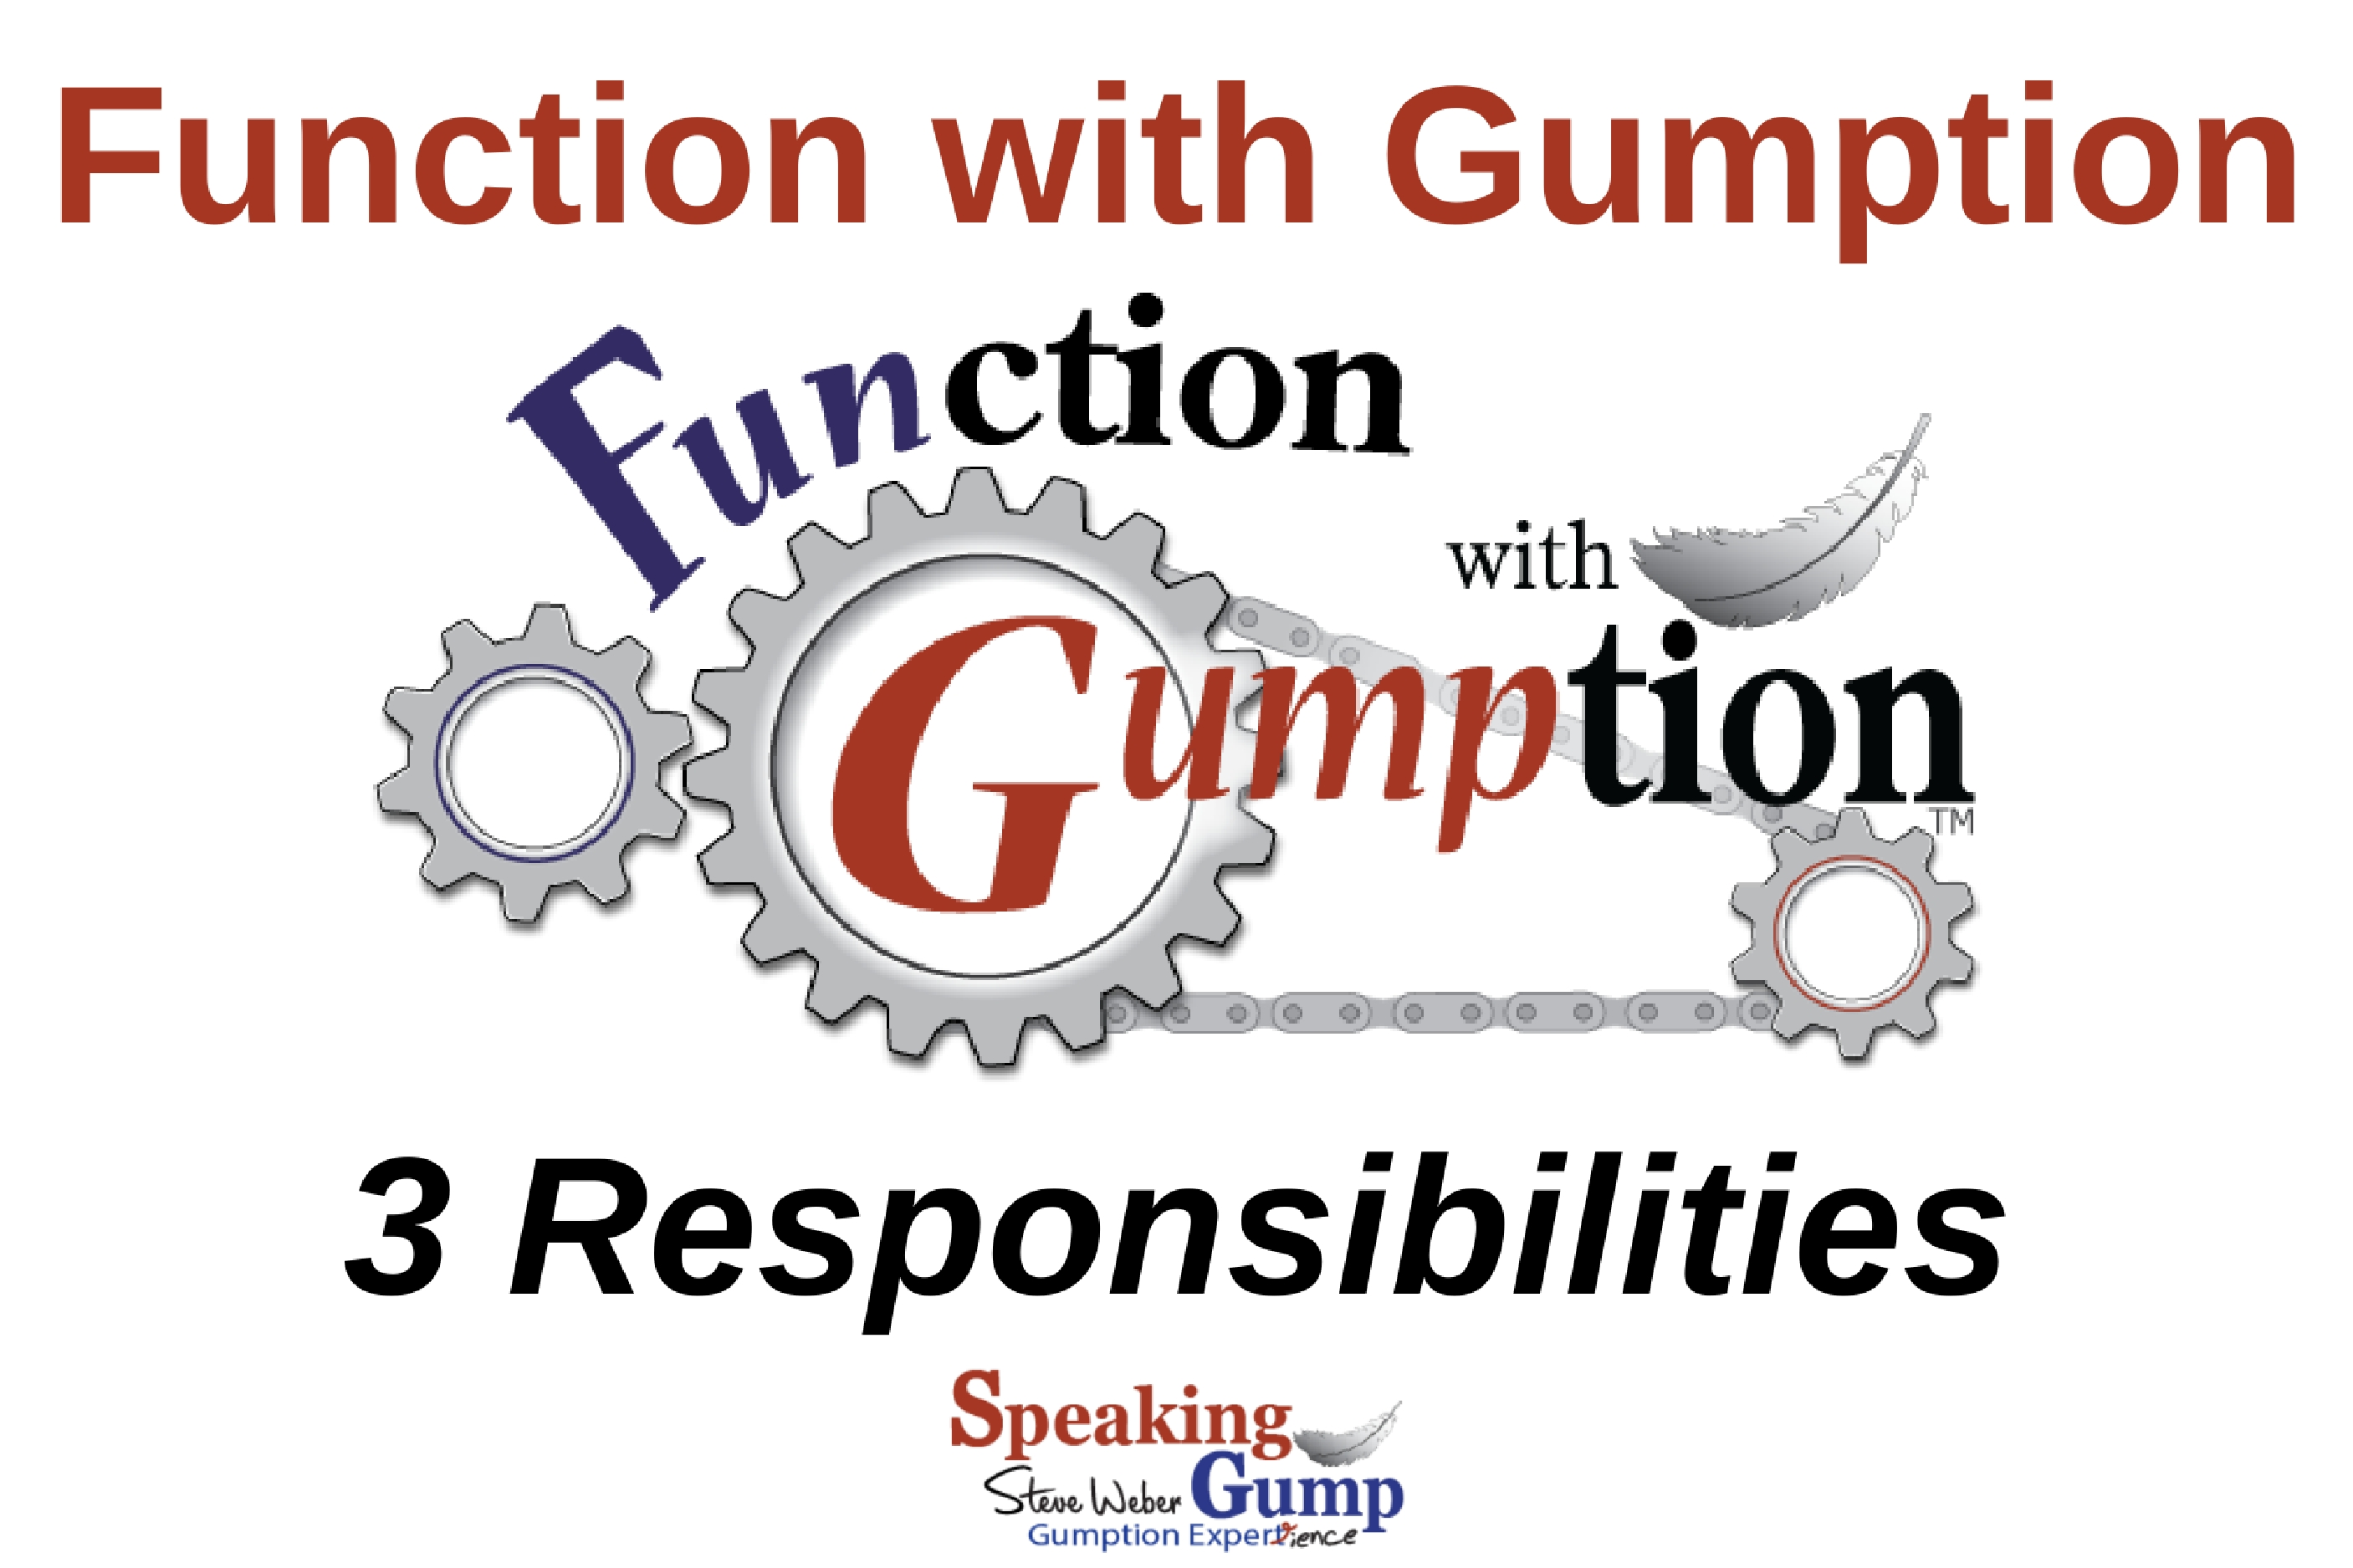 Function with Gumption - 3 Responsibilities